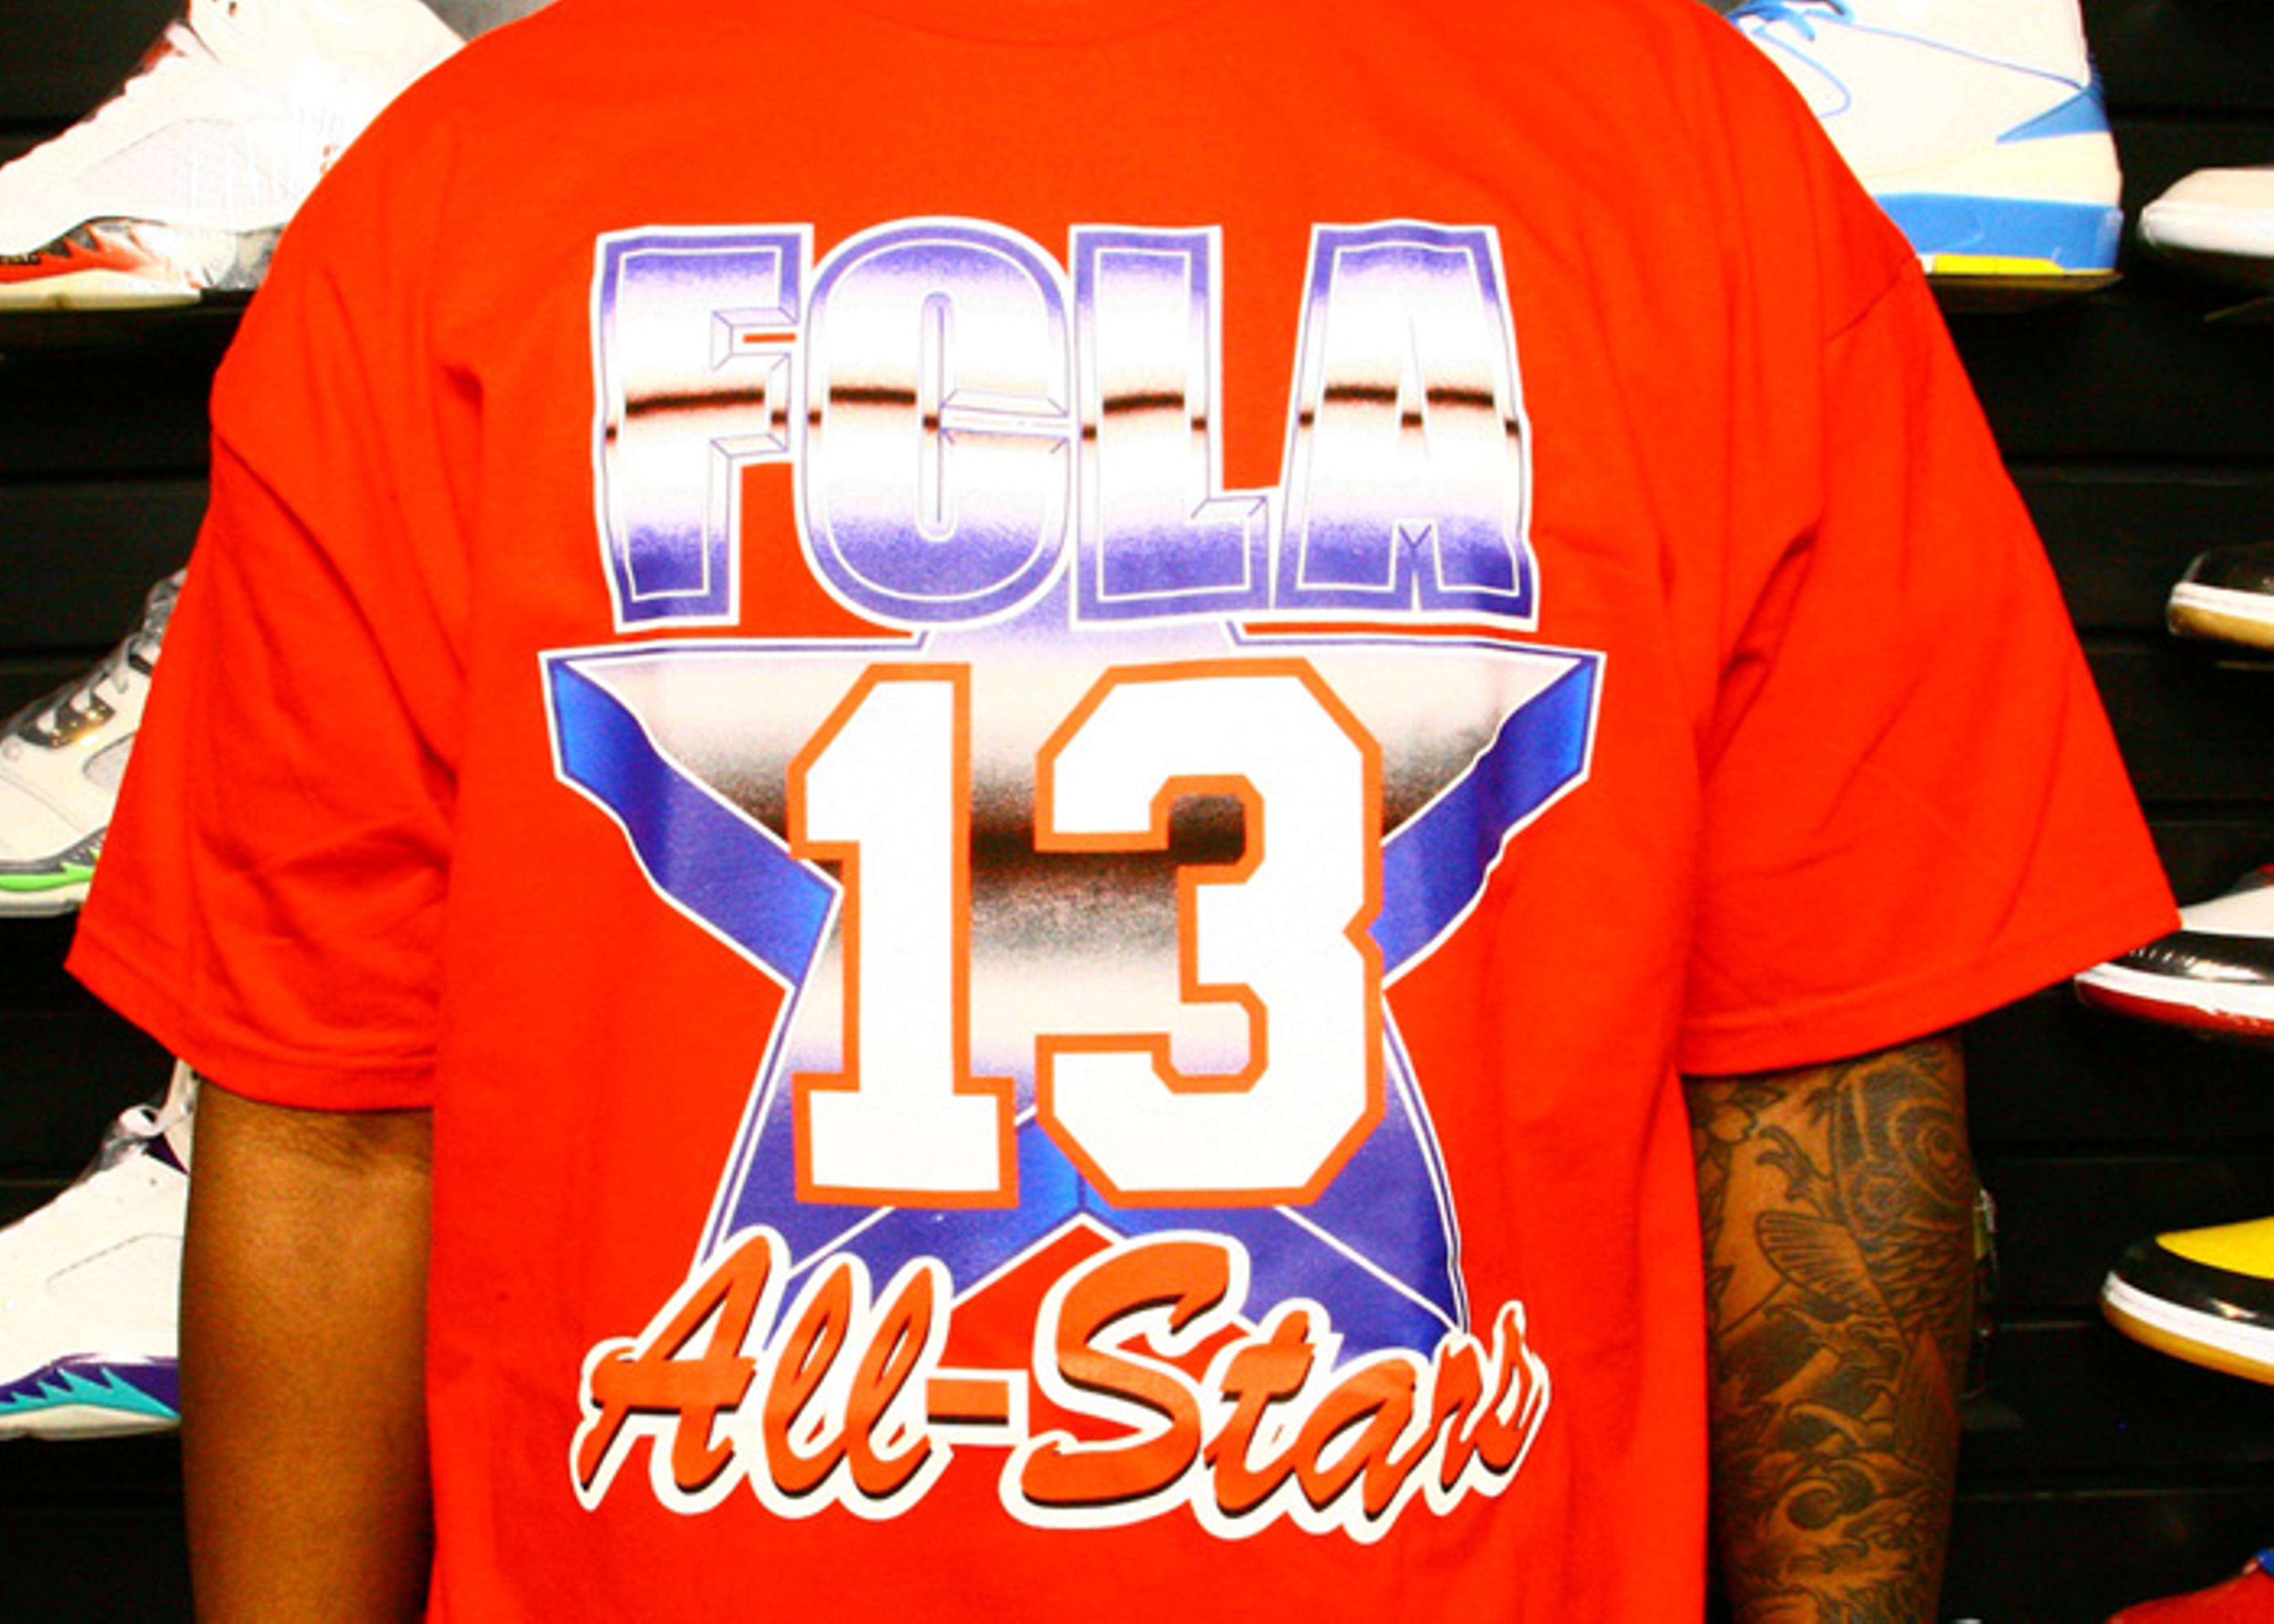 91 all star west t-shirt